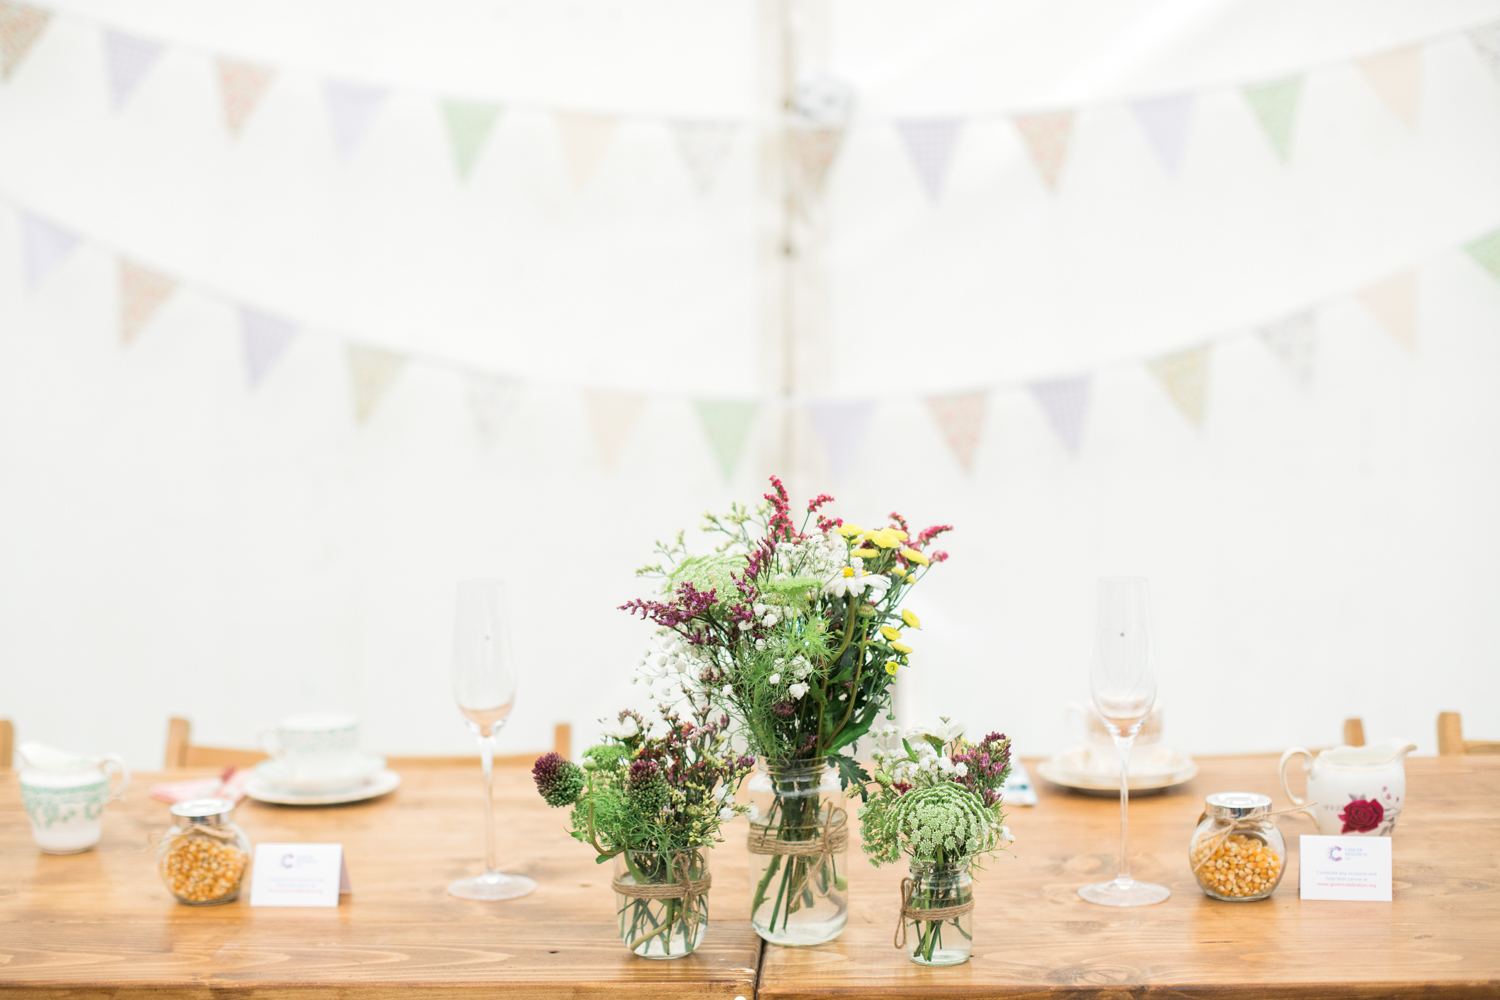 087Lotti & Dave marquee wedding Sophie Evans Photography West Midlands reportage wedding photography.jpg